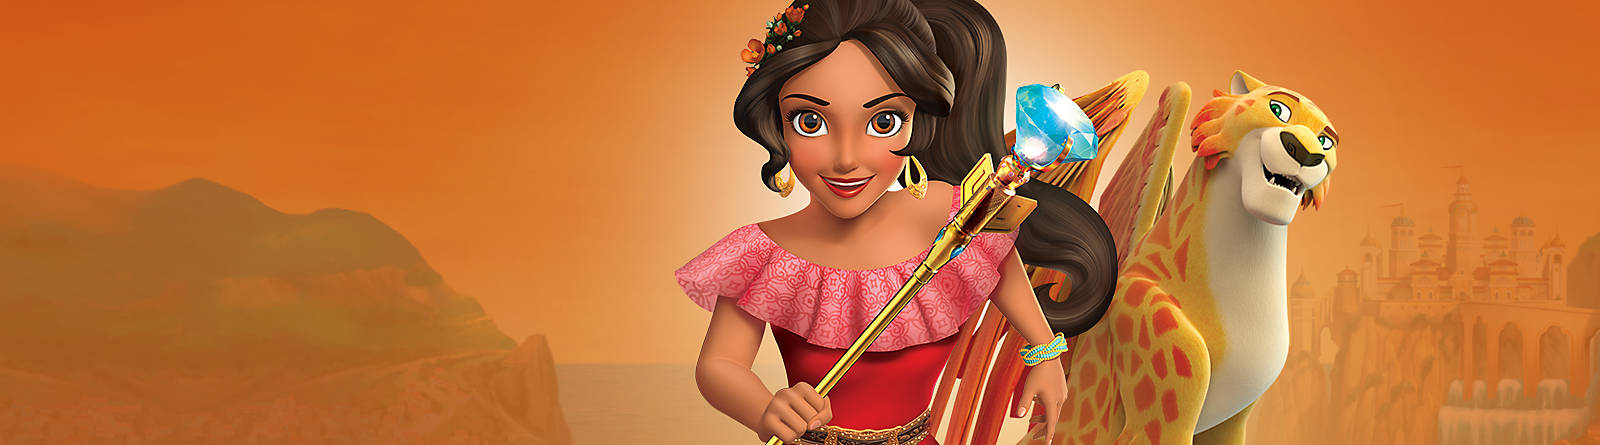 Elena of Avalor Discover our wonderful range of Elena of Avalor soft toys, costumes, clothing and more